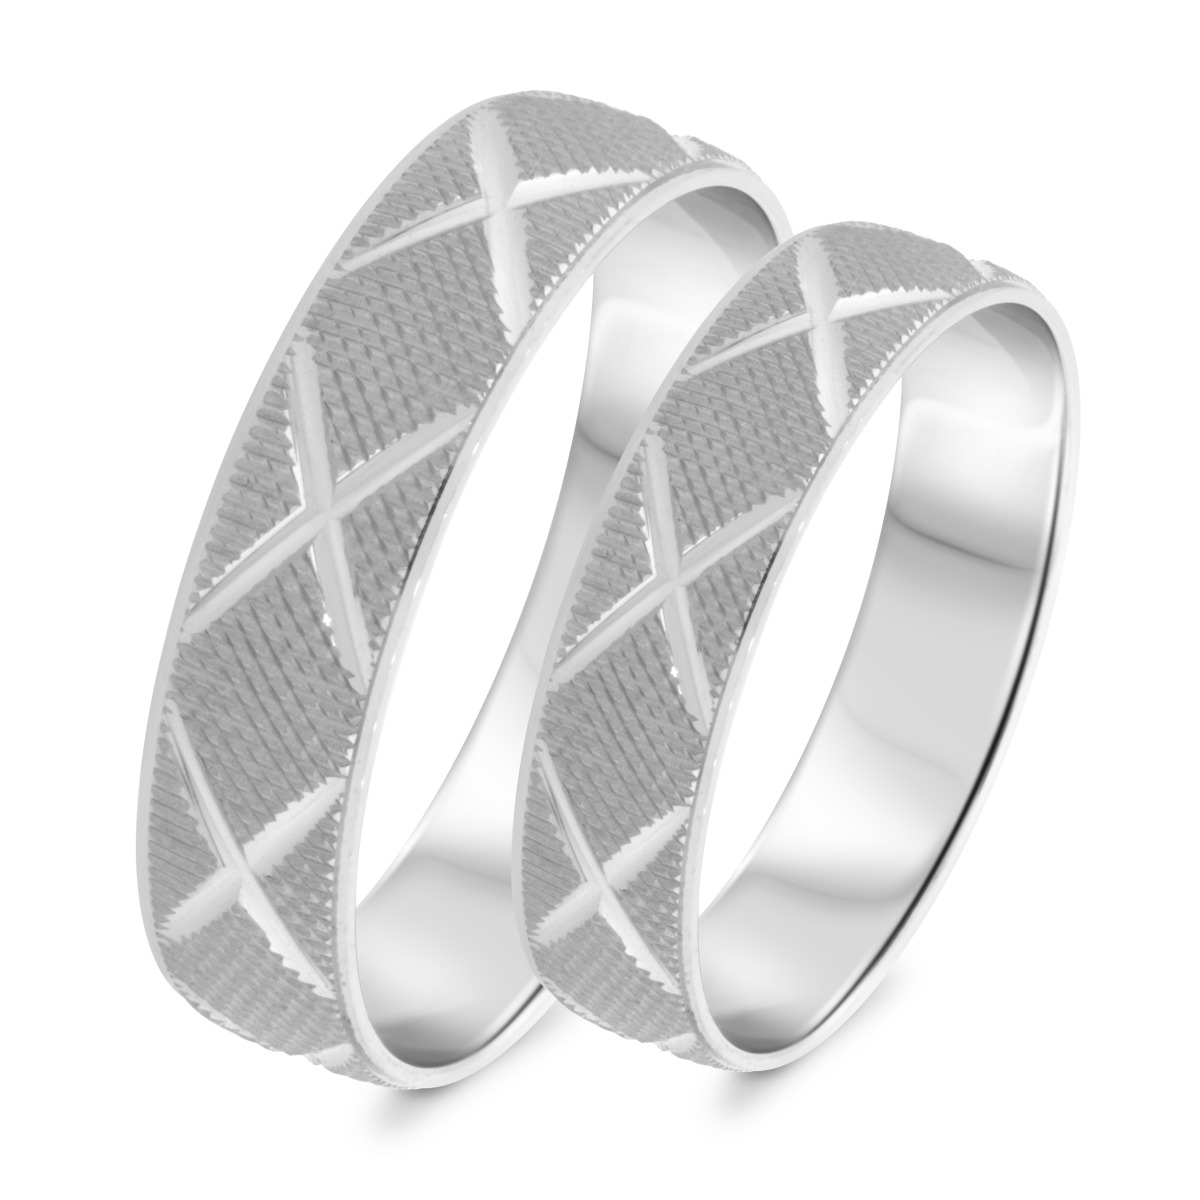 Matching Wedding Band Set 10K White Gold